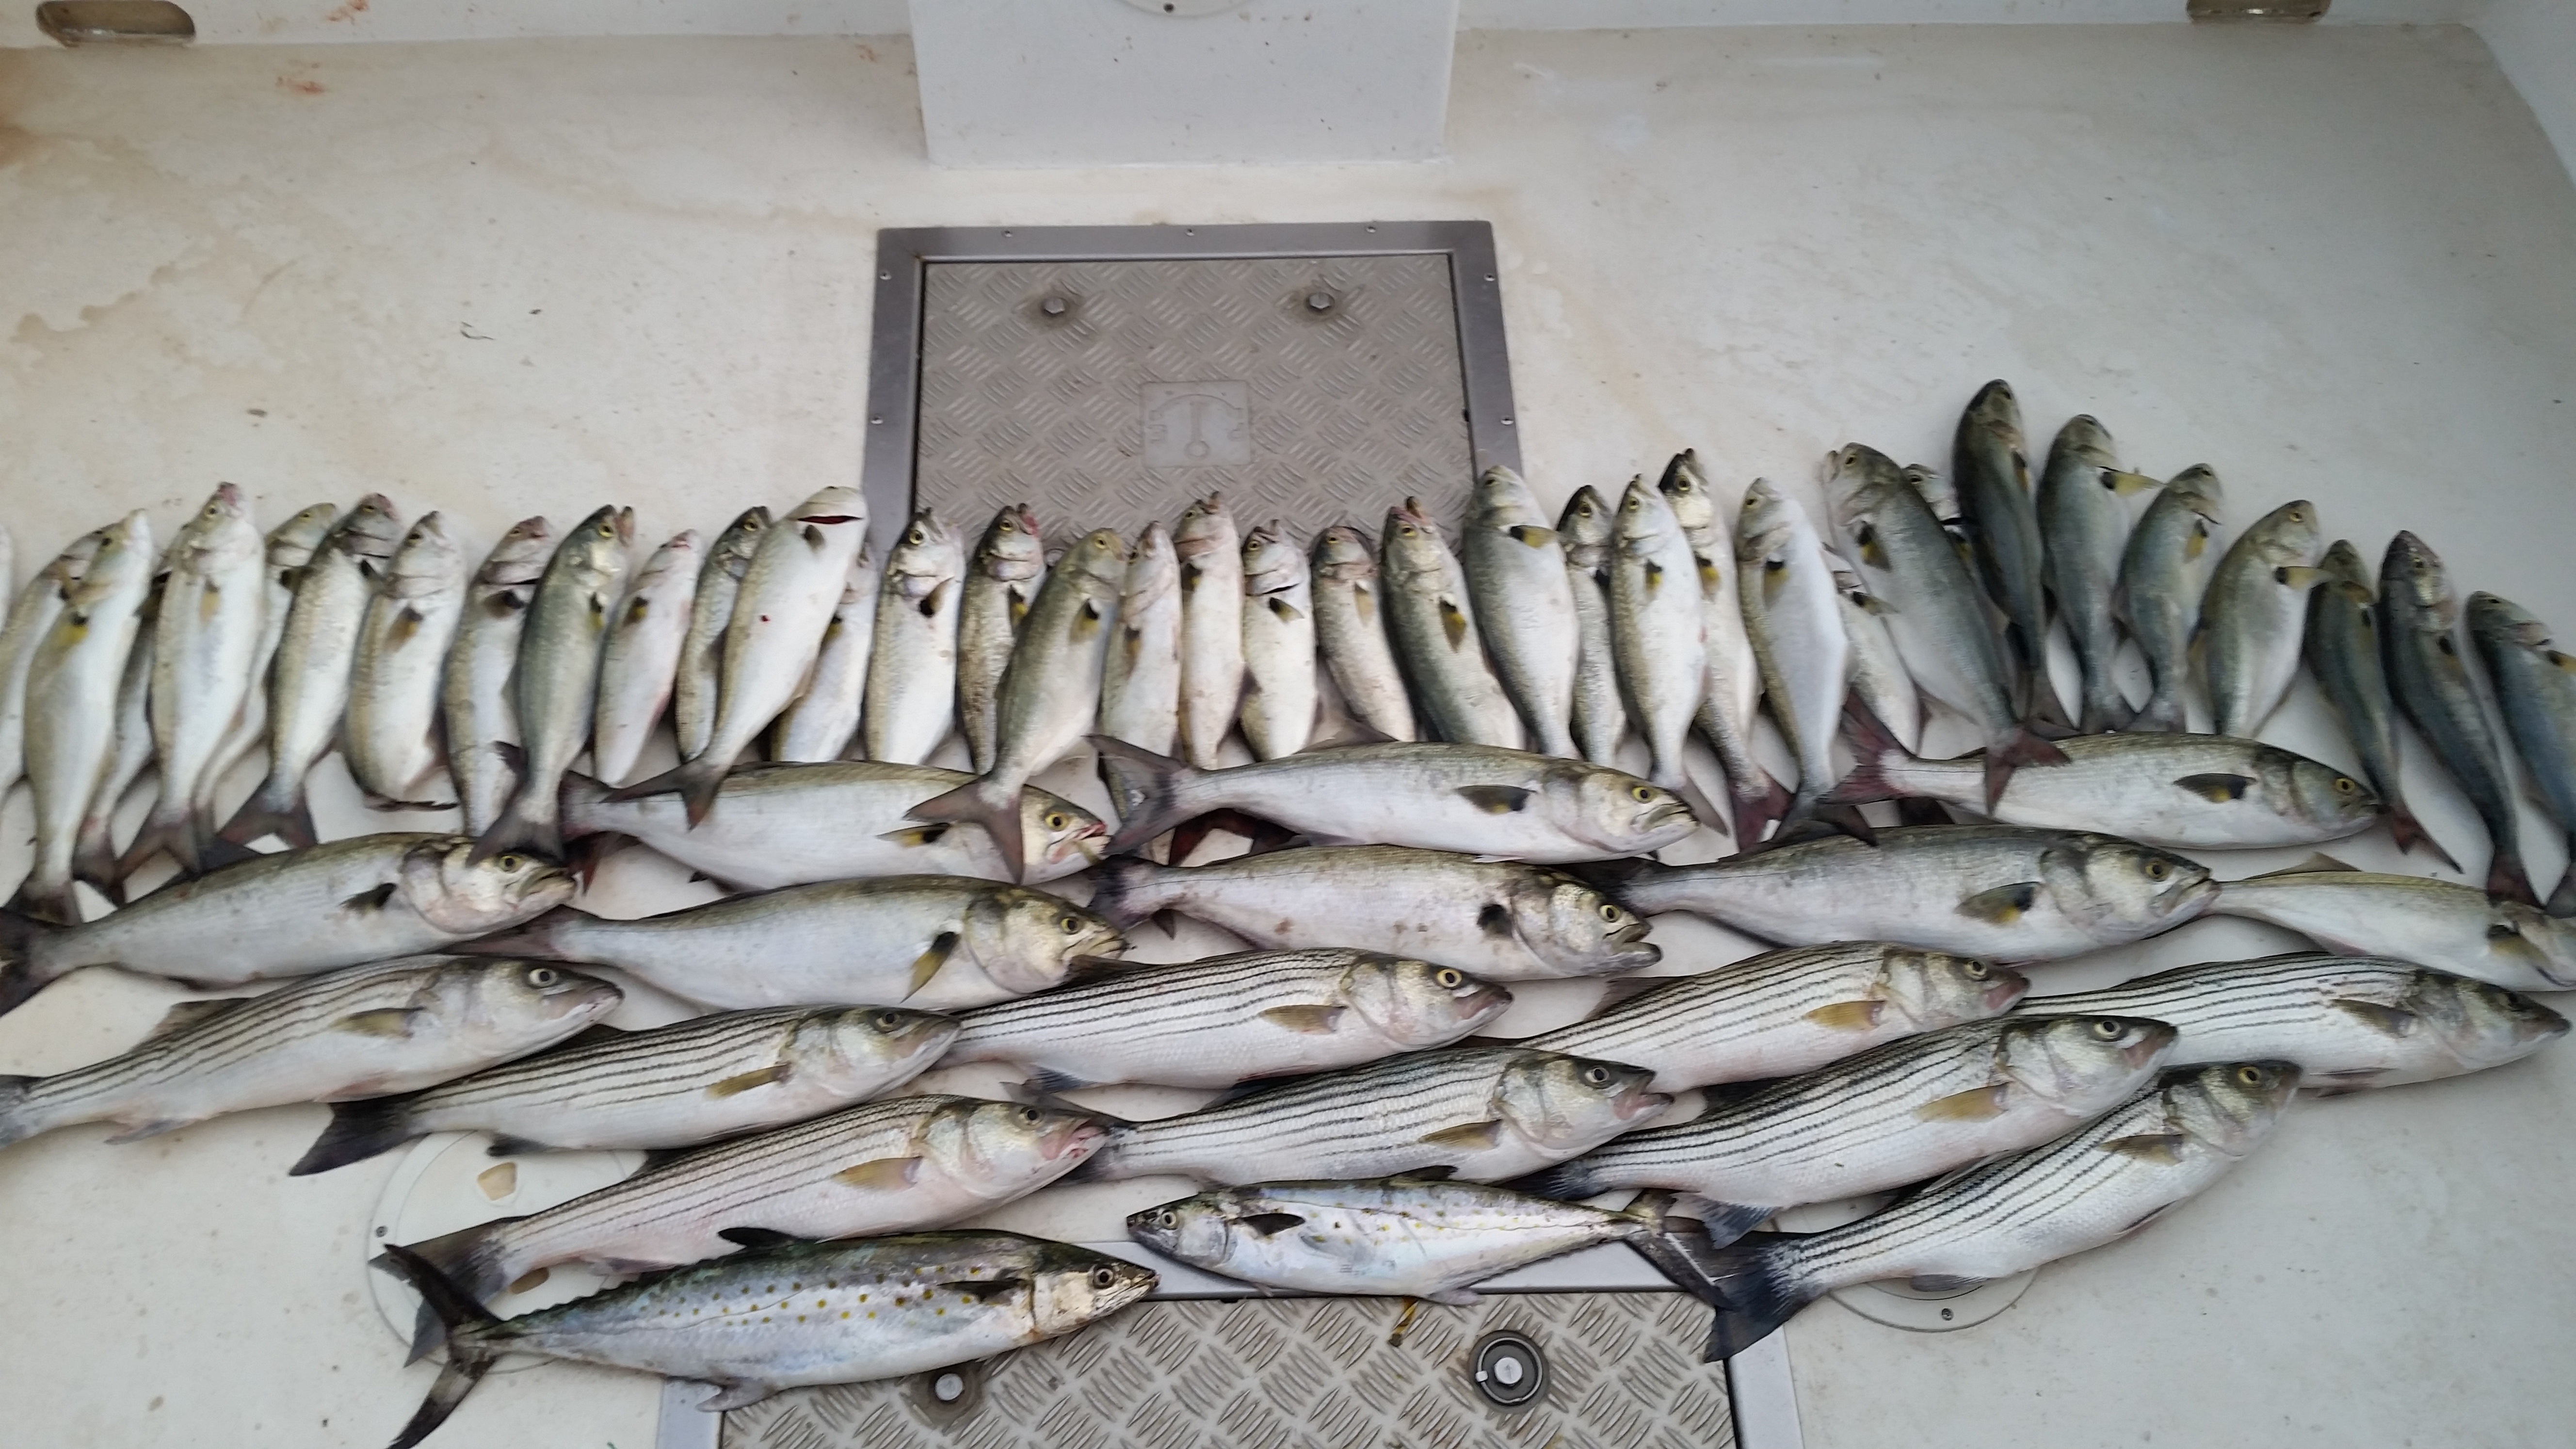 Chesapeake bay fishing charter mixing it up in the upper bay for Upper chesapeake bay fishing report